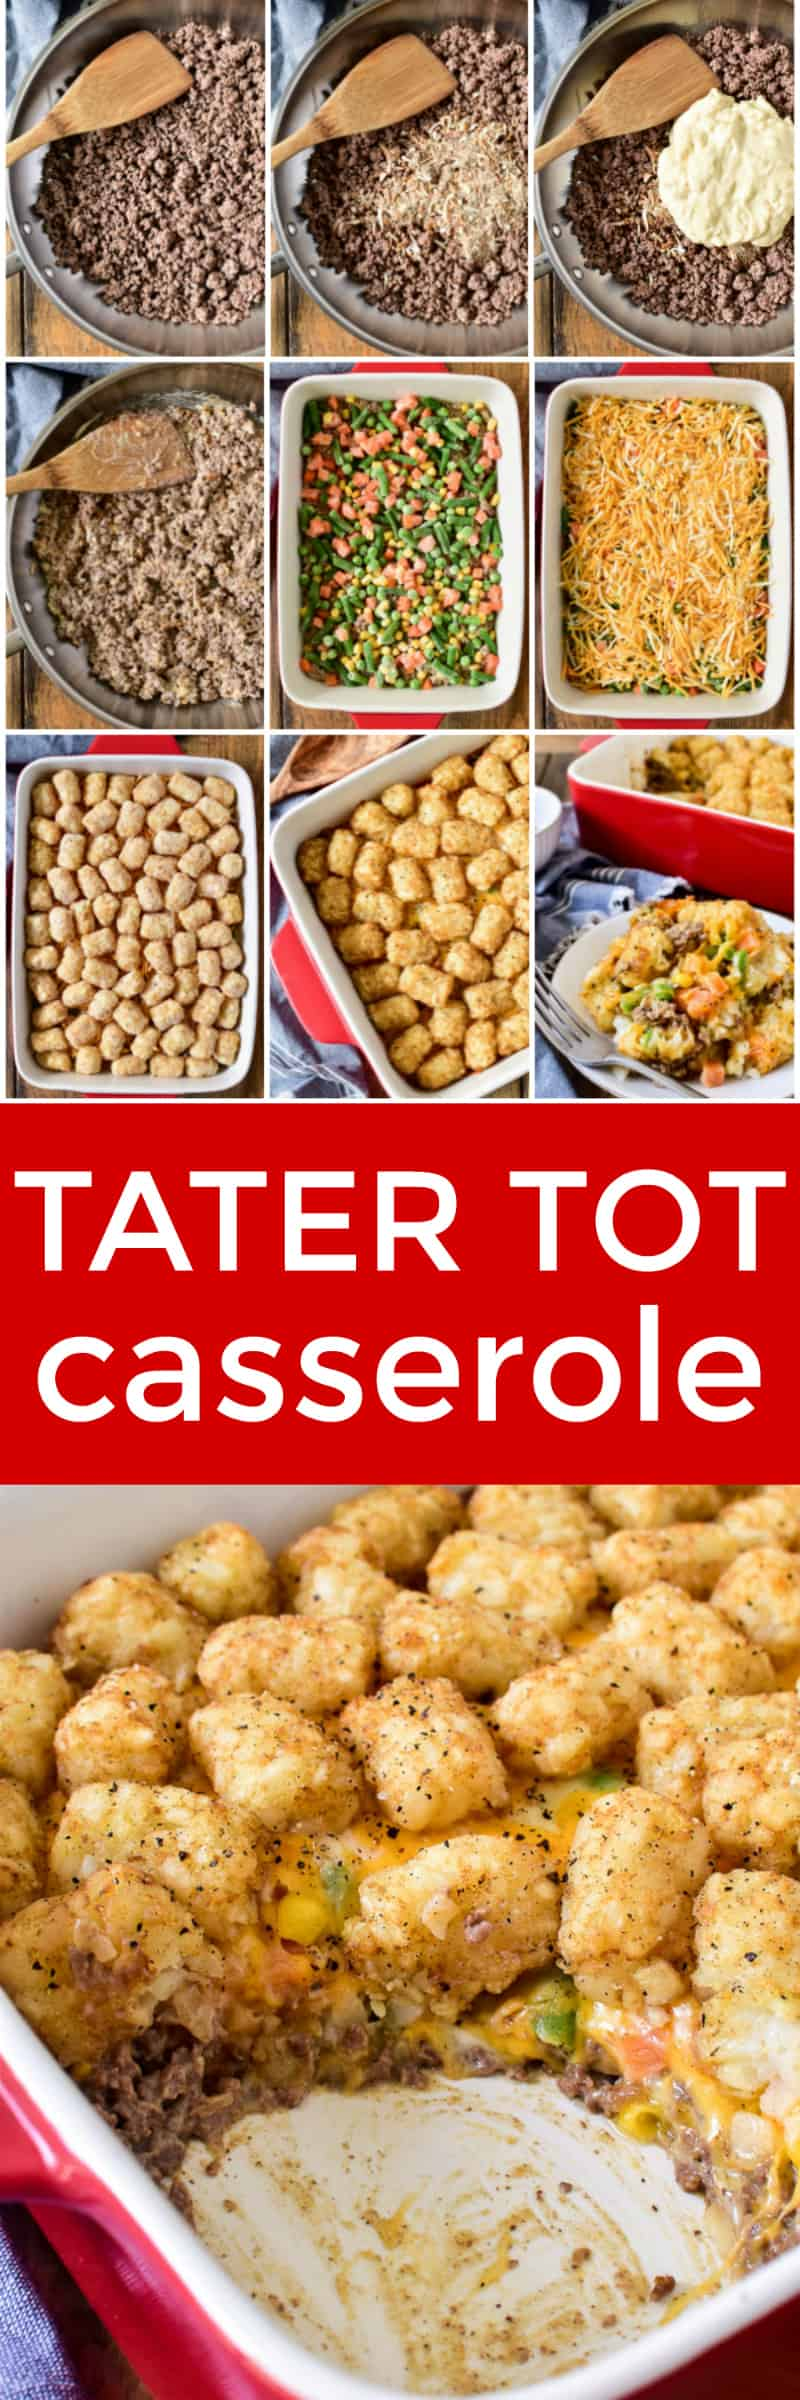 Collage image of Tater Tot Casserole